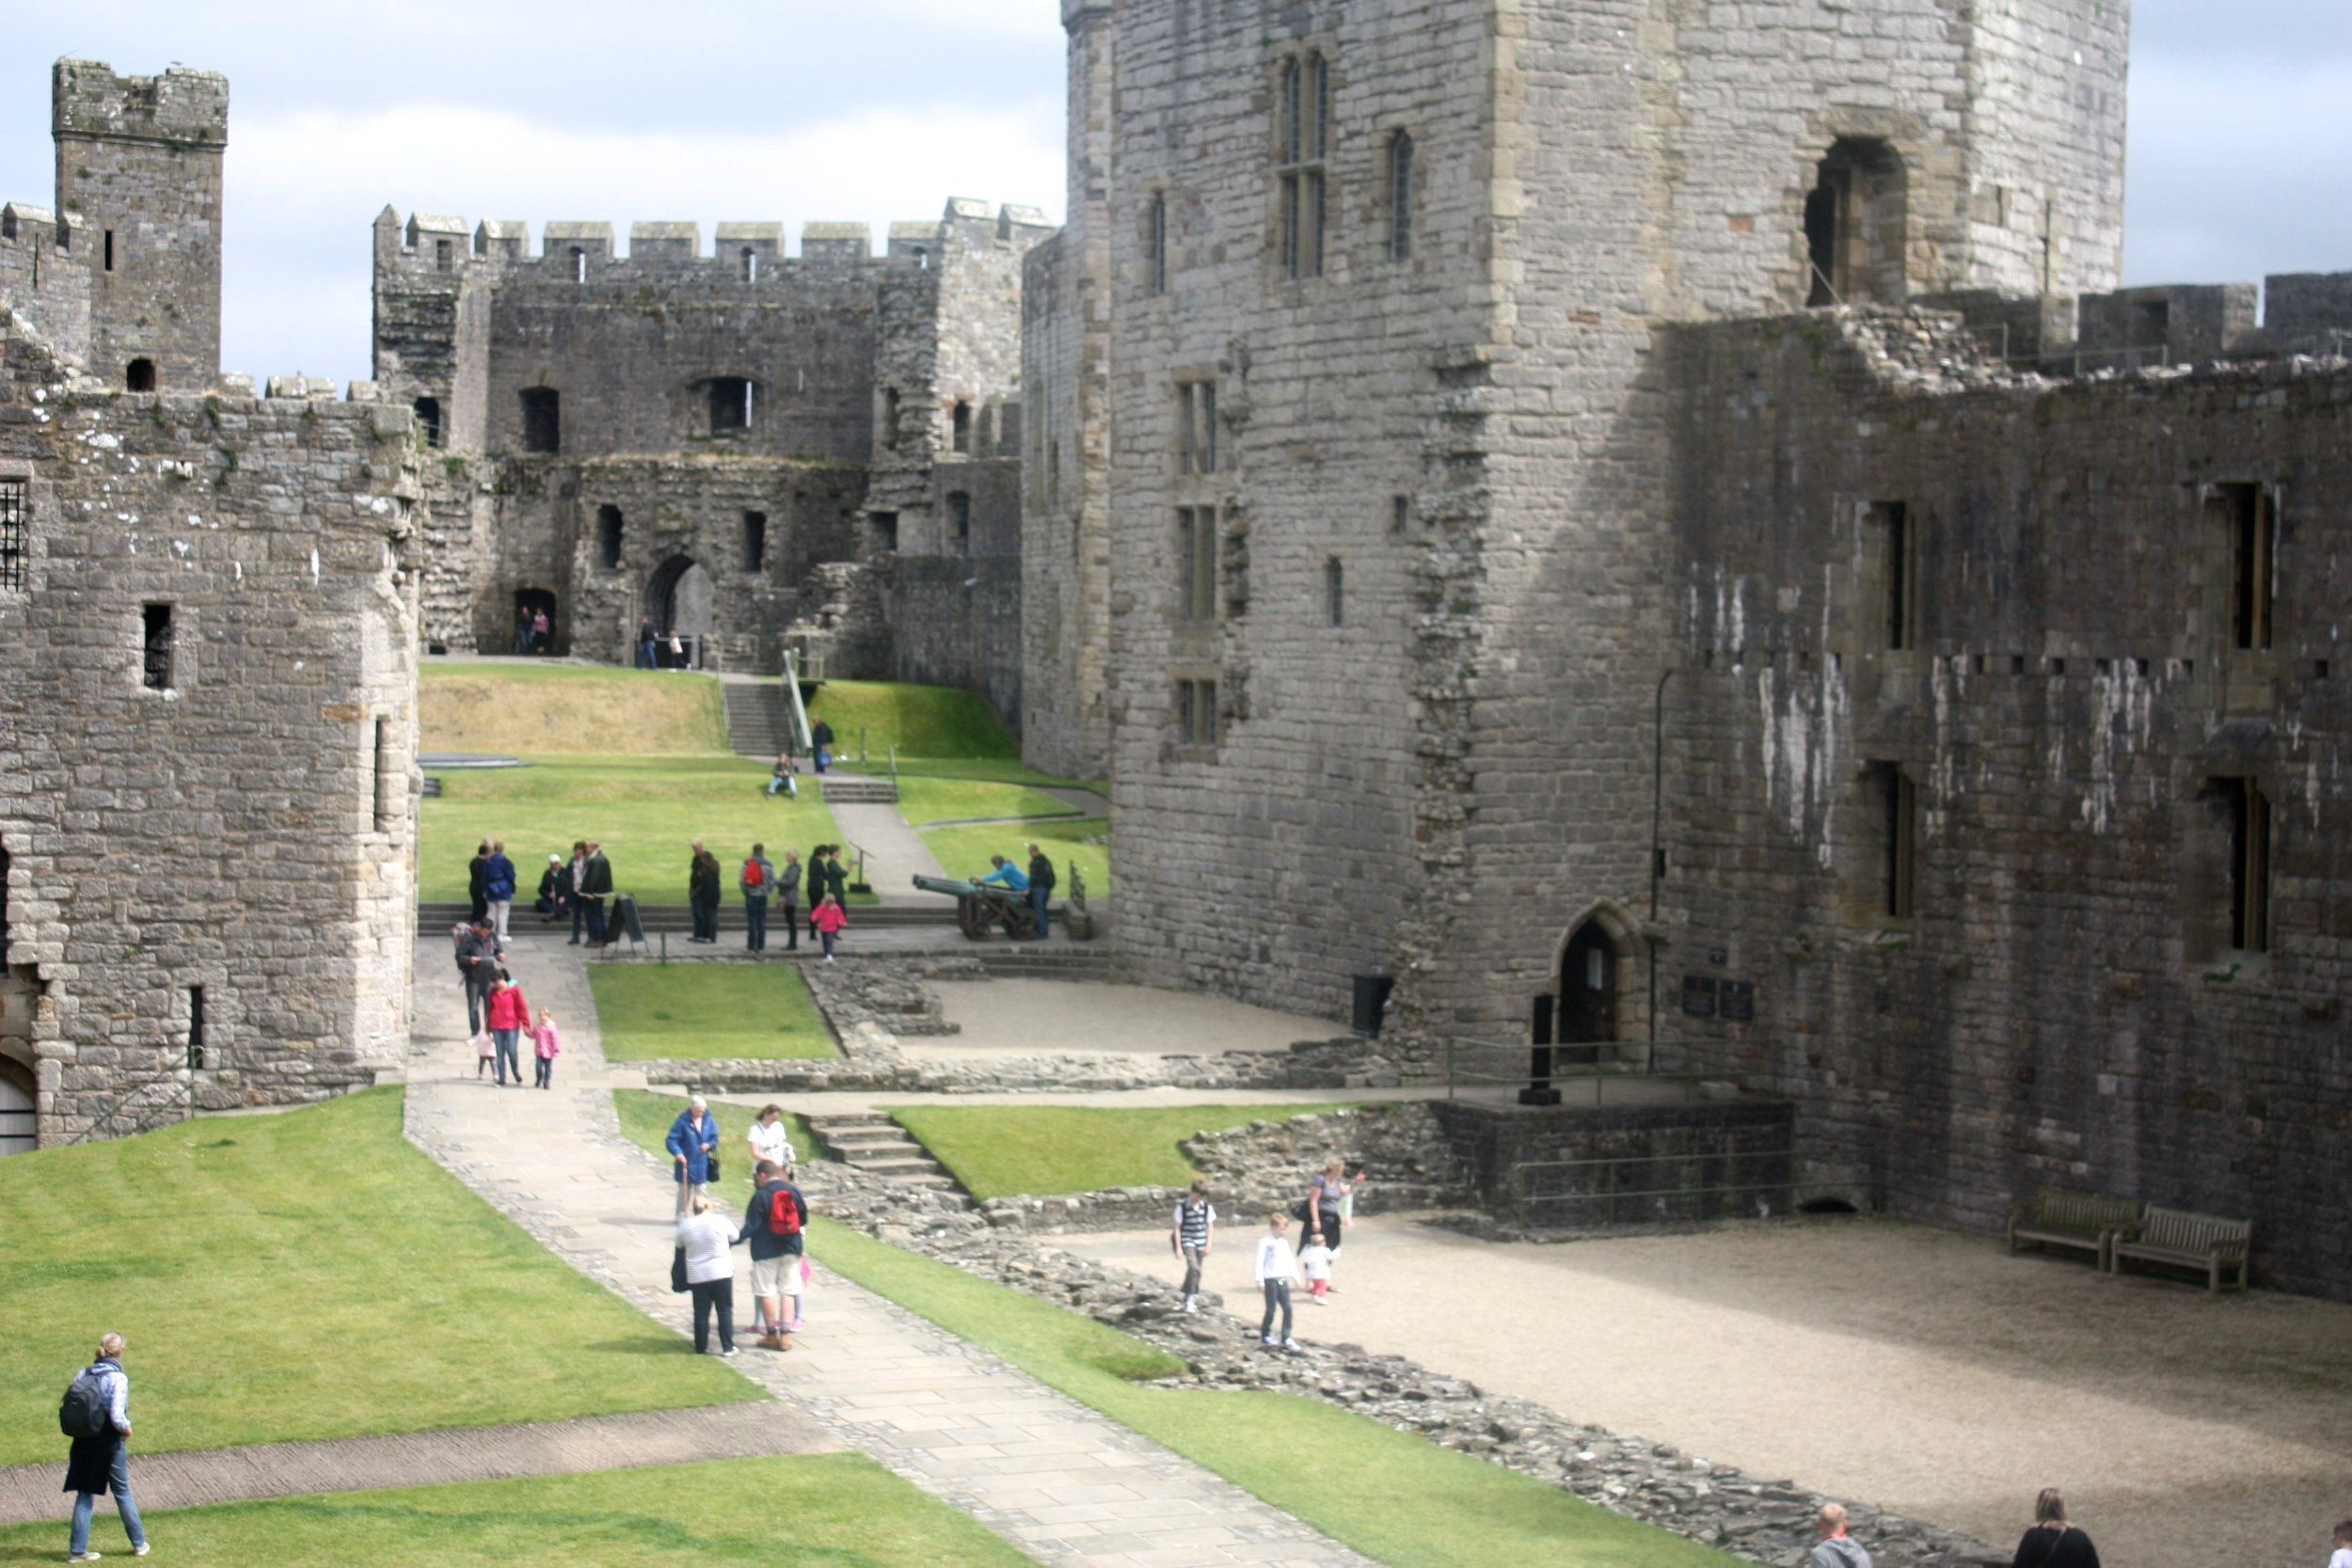 This castle was built by Edward I